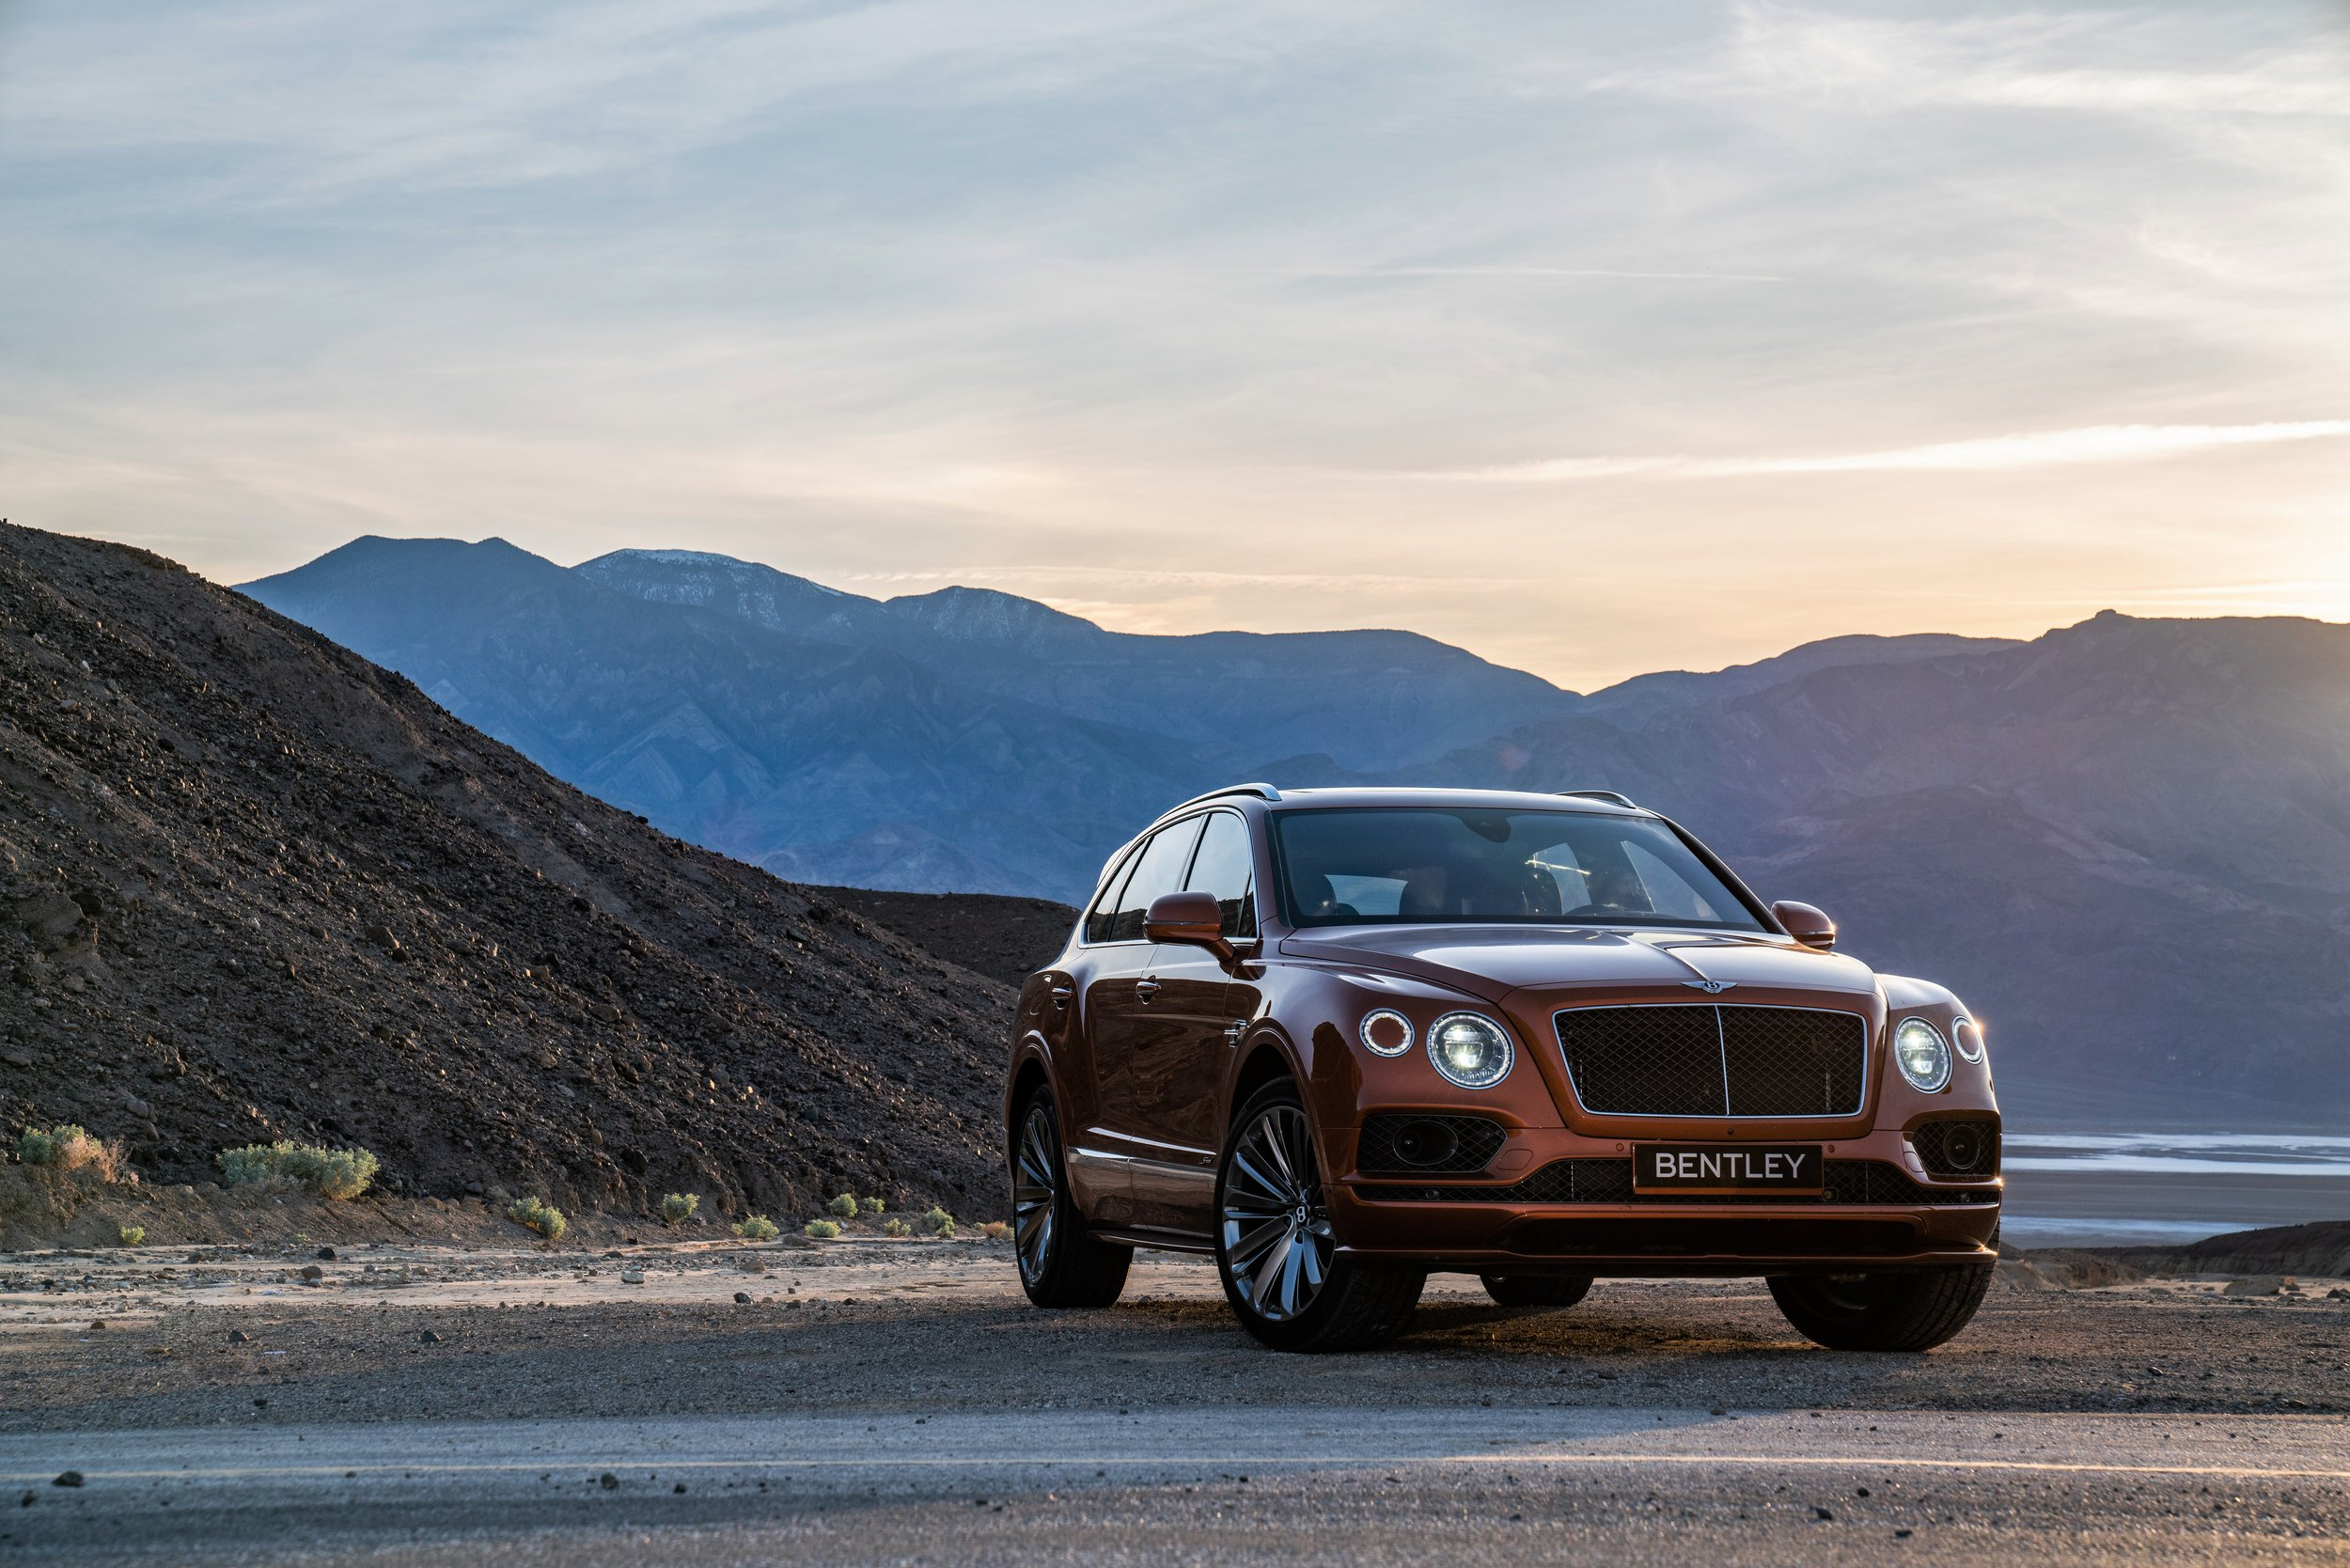 Bentley Bentayga Speed, Death Valley, CA